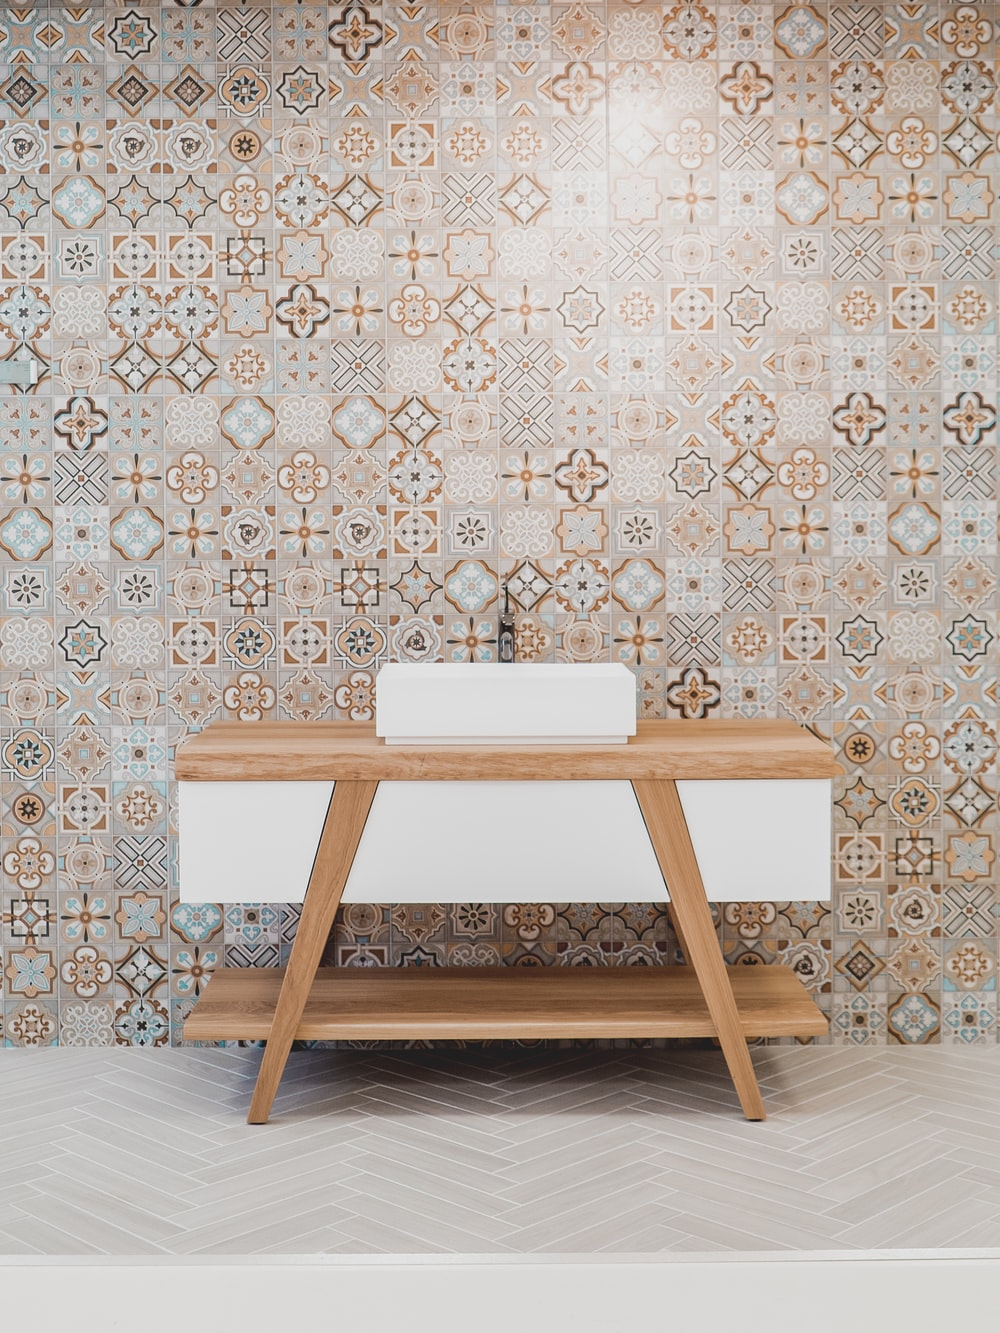 brown wooden table beside white and black wall